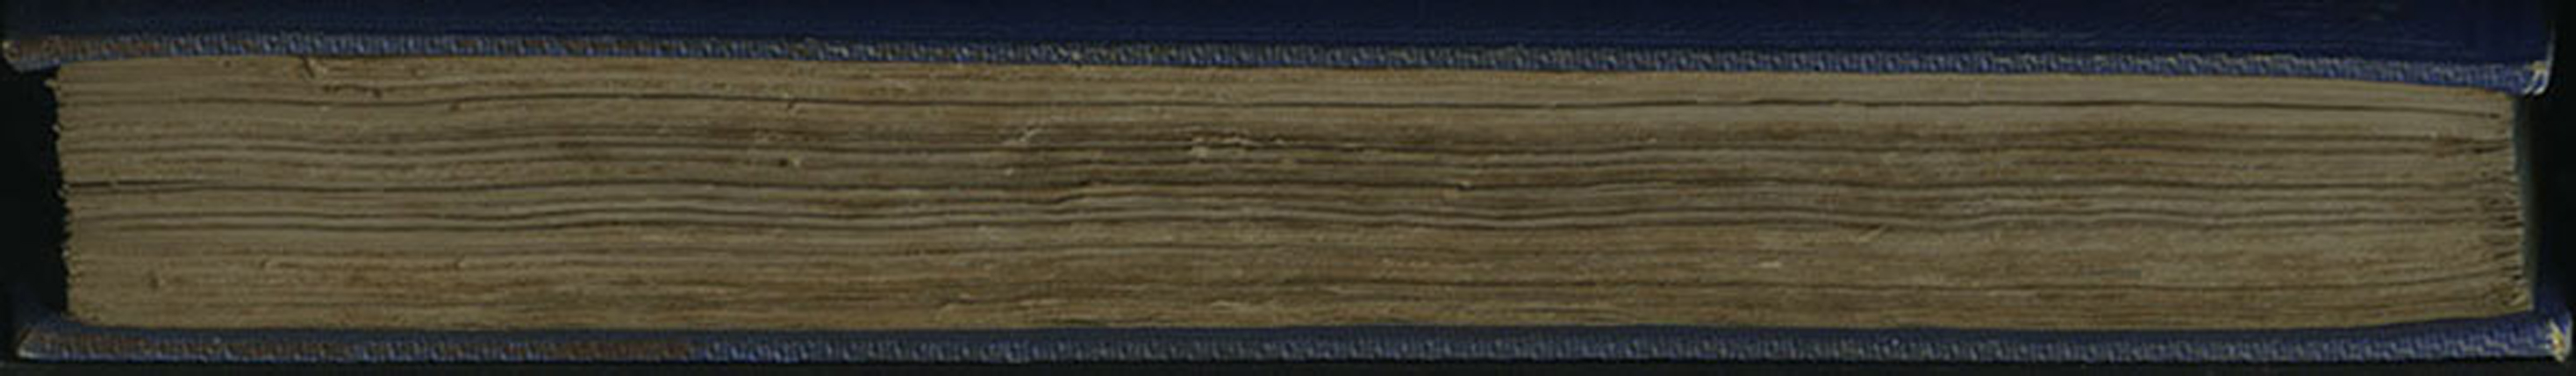 "Fore Edge of Volume 1 of the 1852 James Nisbet, Sampson Low, Hamilton, Adams & Co. ""Second Edition"" Reprint"